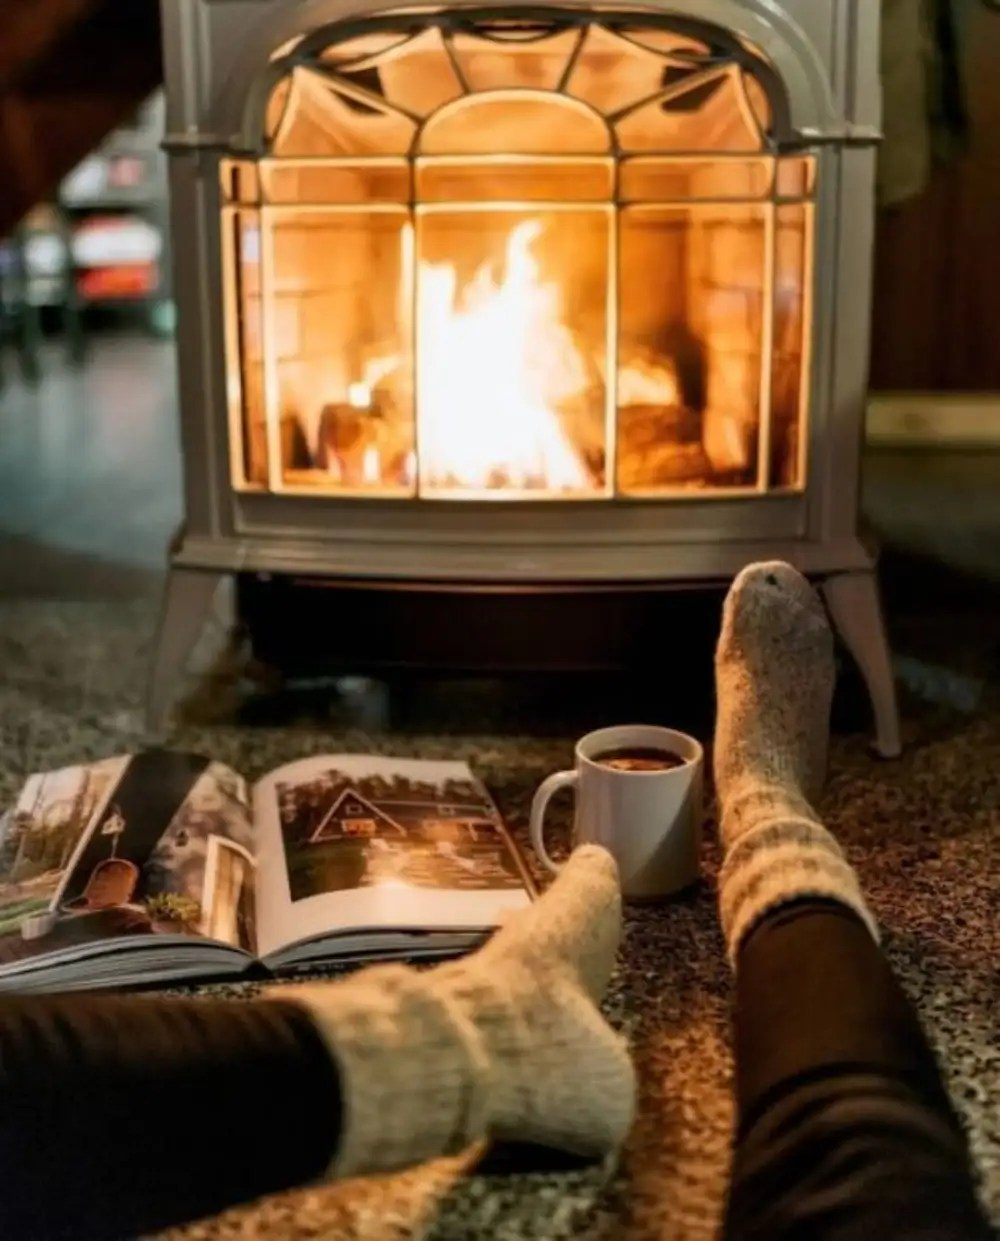 Things To Do Solo, 15 Things To Do Solo On A Cozy Night In